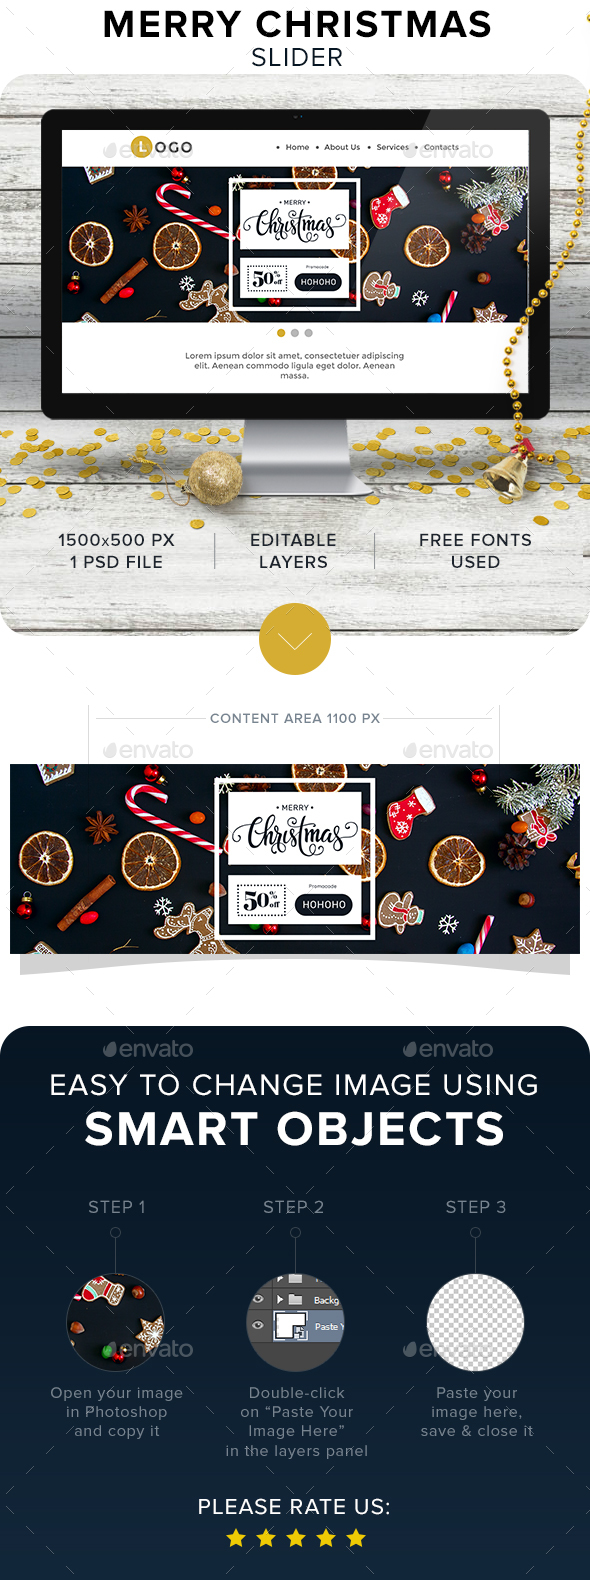 Website Banners Graphics, Designs & Templates from GraphicRiver